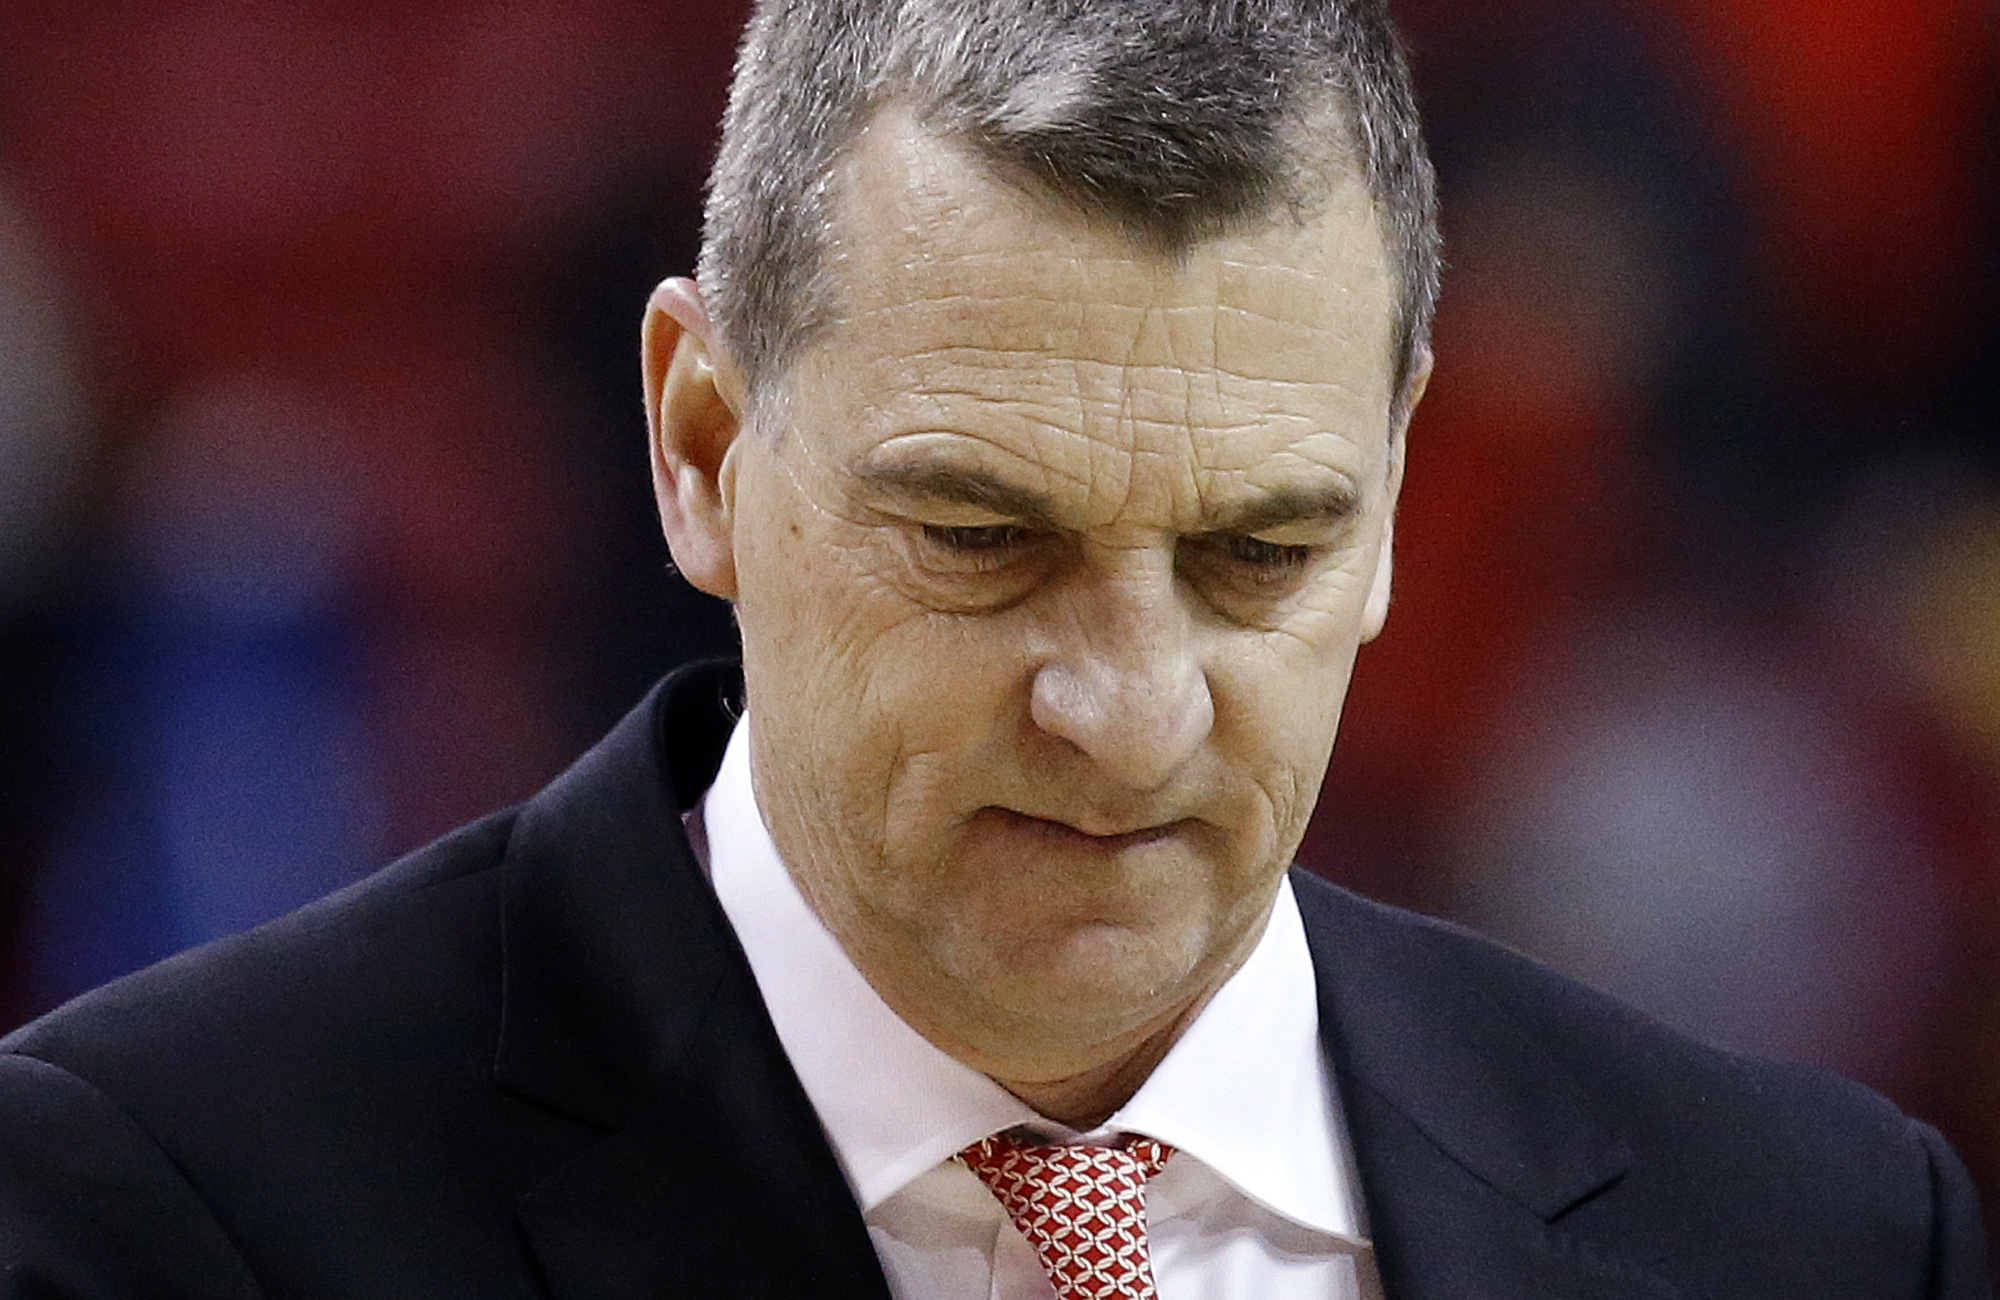 Maryland coach Mark Turgeon walks off the court after the team's NCAA college basketball game against Wisconsin, Saturday, Feb. 13, 2016, in College Park, Md. Wisconsin won 70-57. (AP Photo/Patrick Semansky)